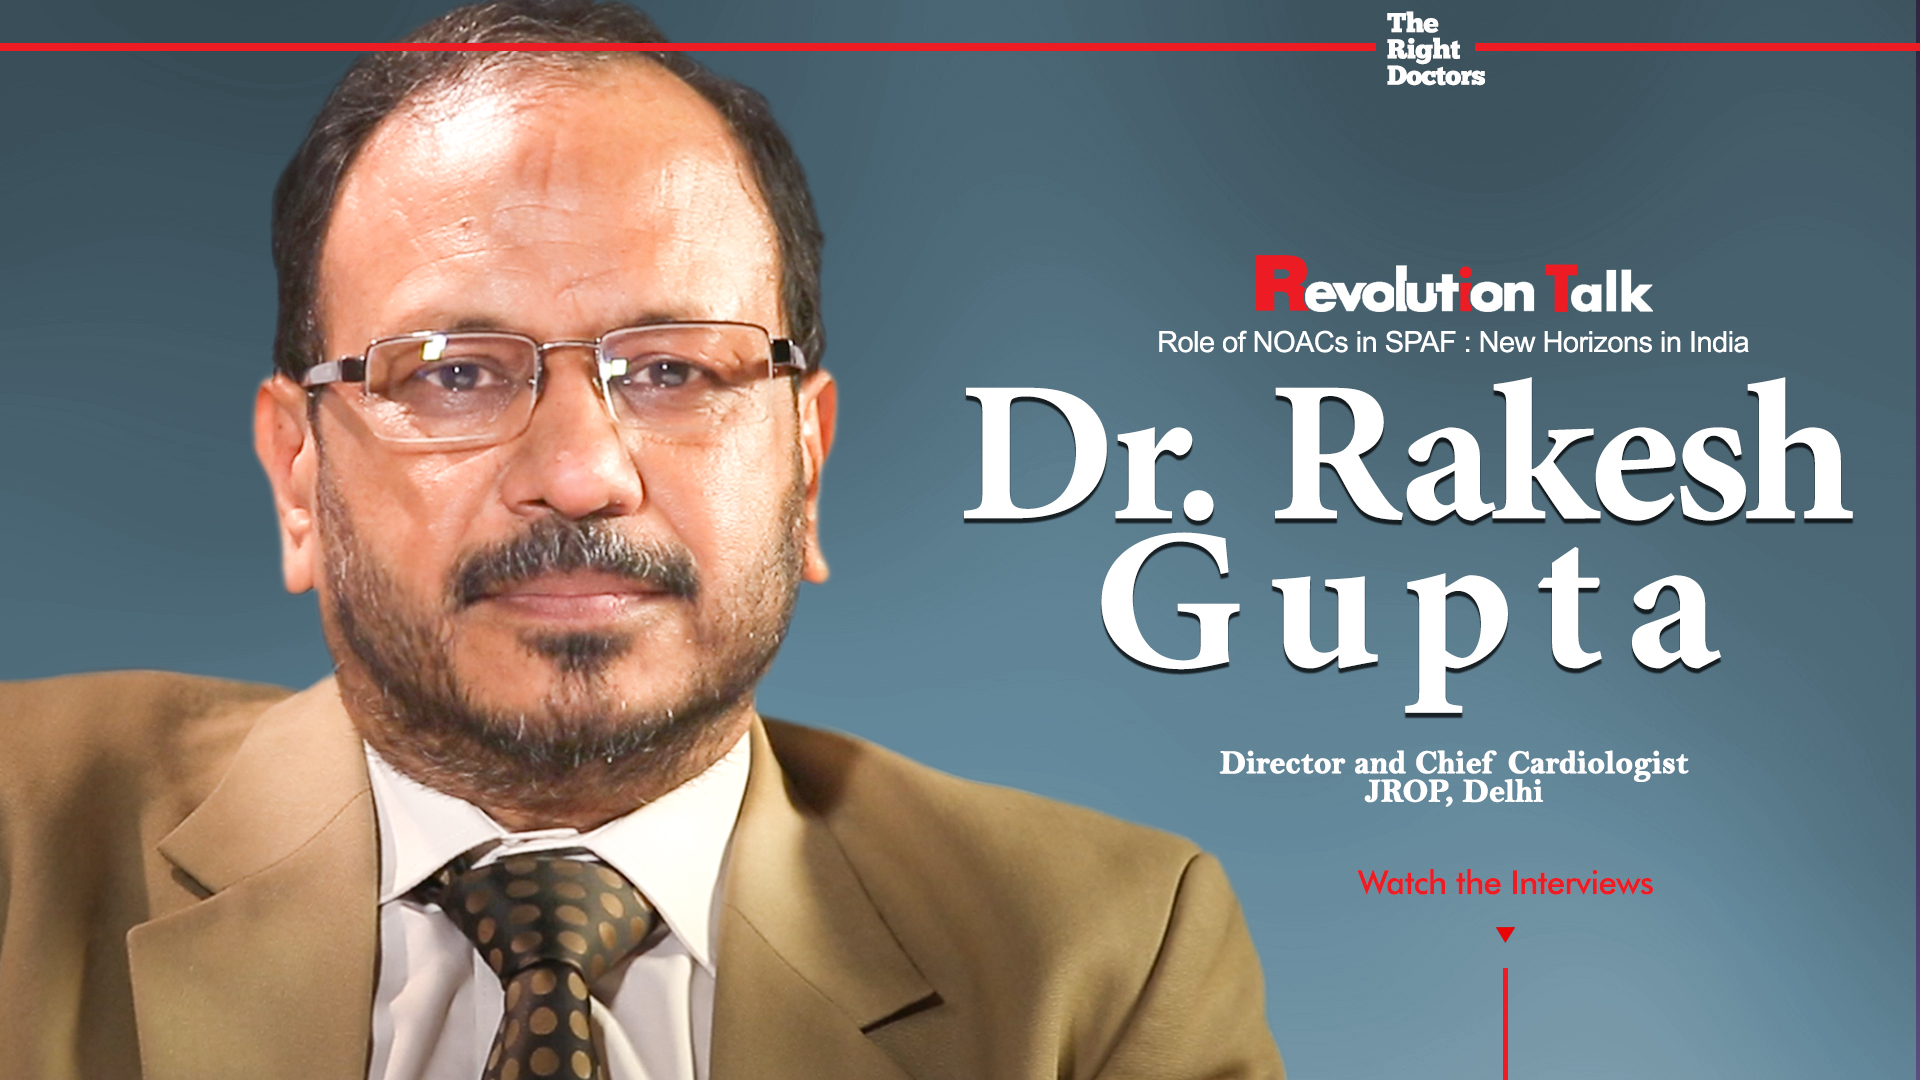 Dr. Rakesh Gupta, Director and Chief Cardiologist, JROP, Delhi,